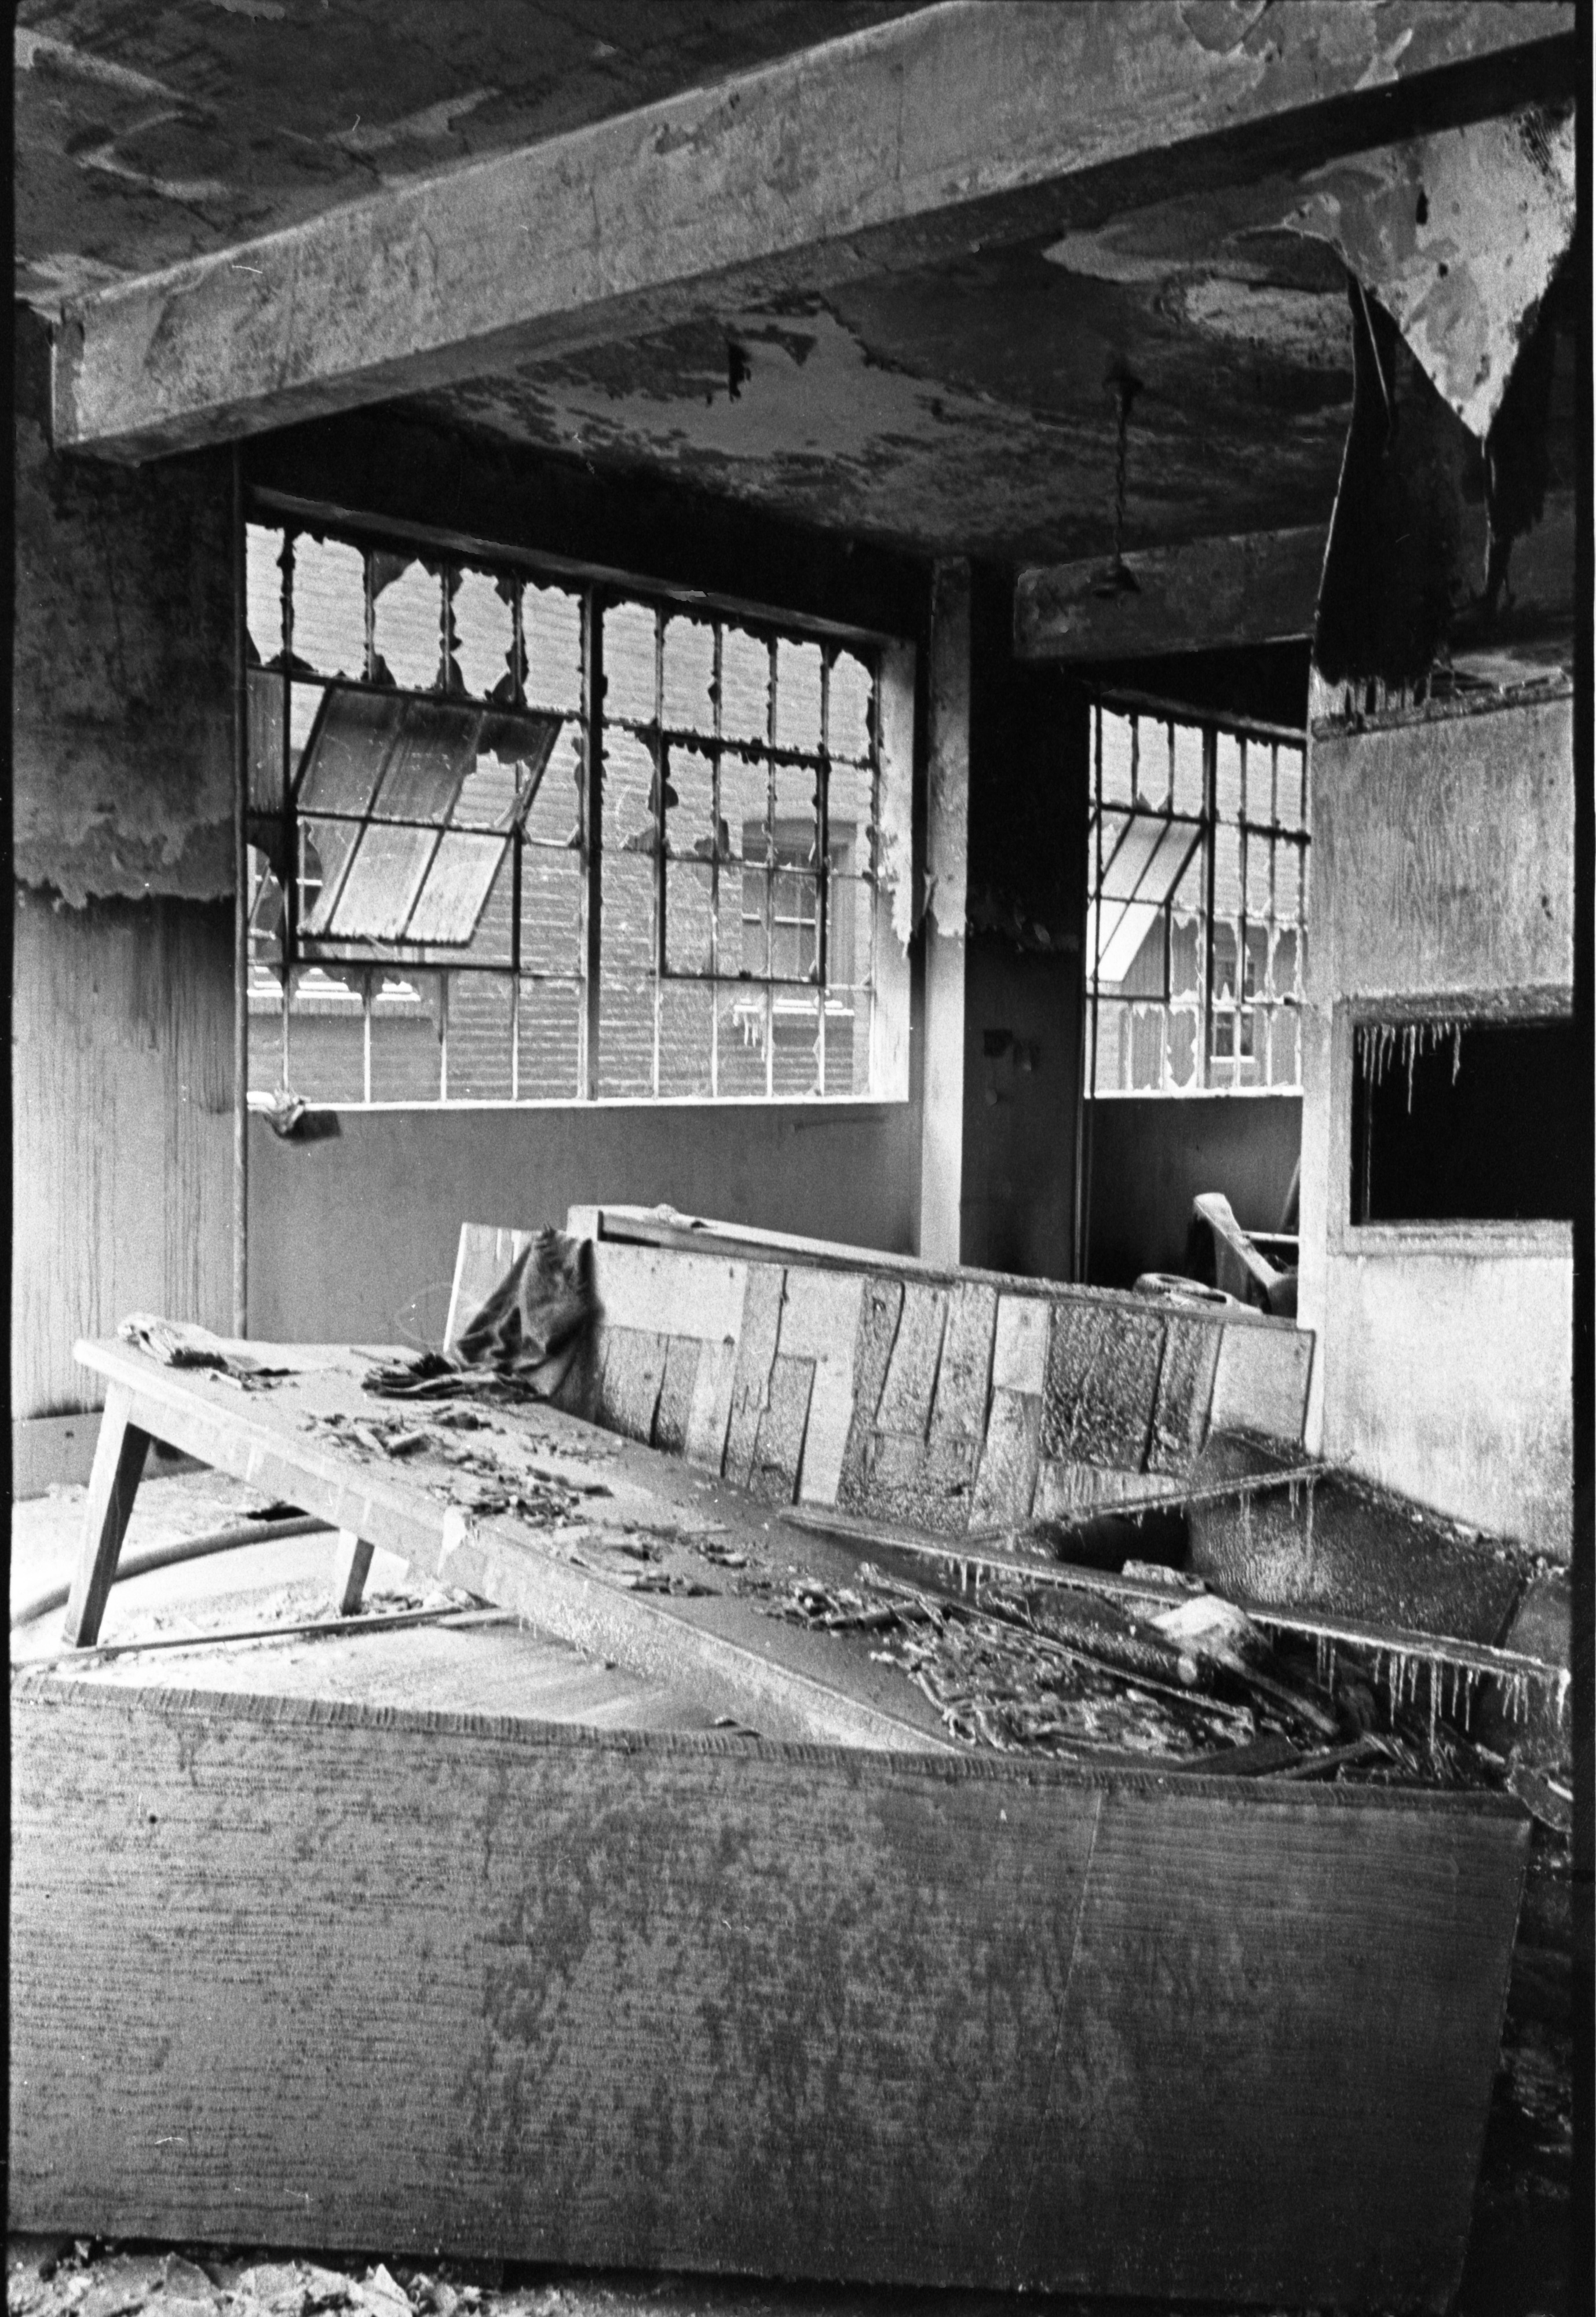 Community Center At 502 E. Washington After Fire, December 16, 1972 image